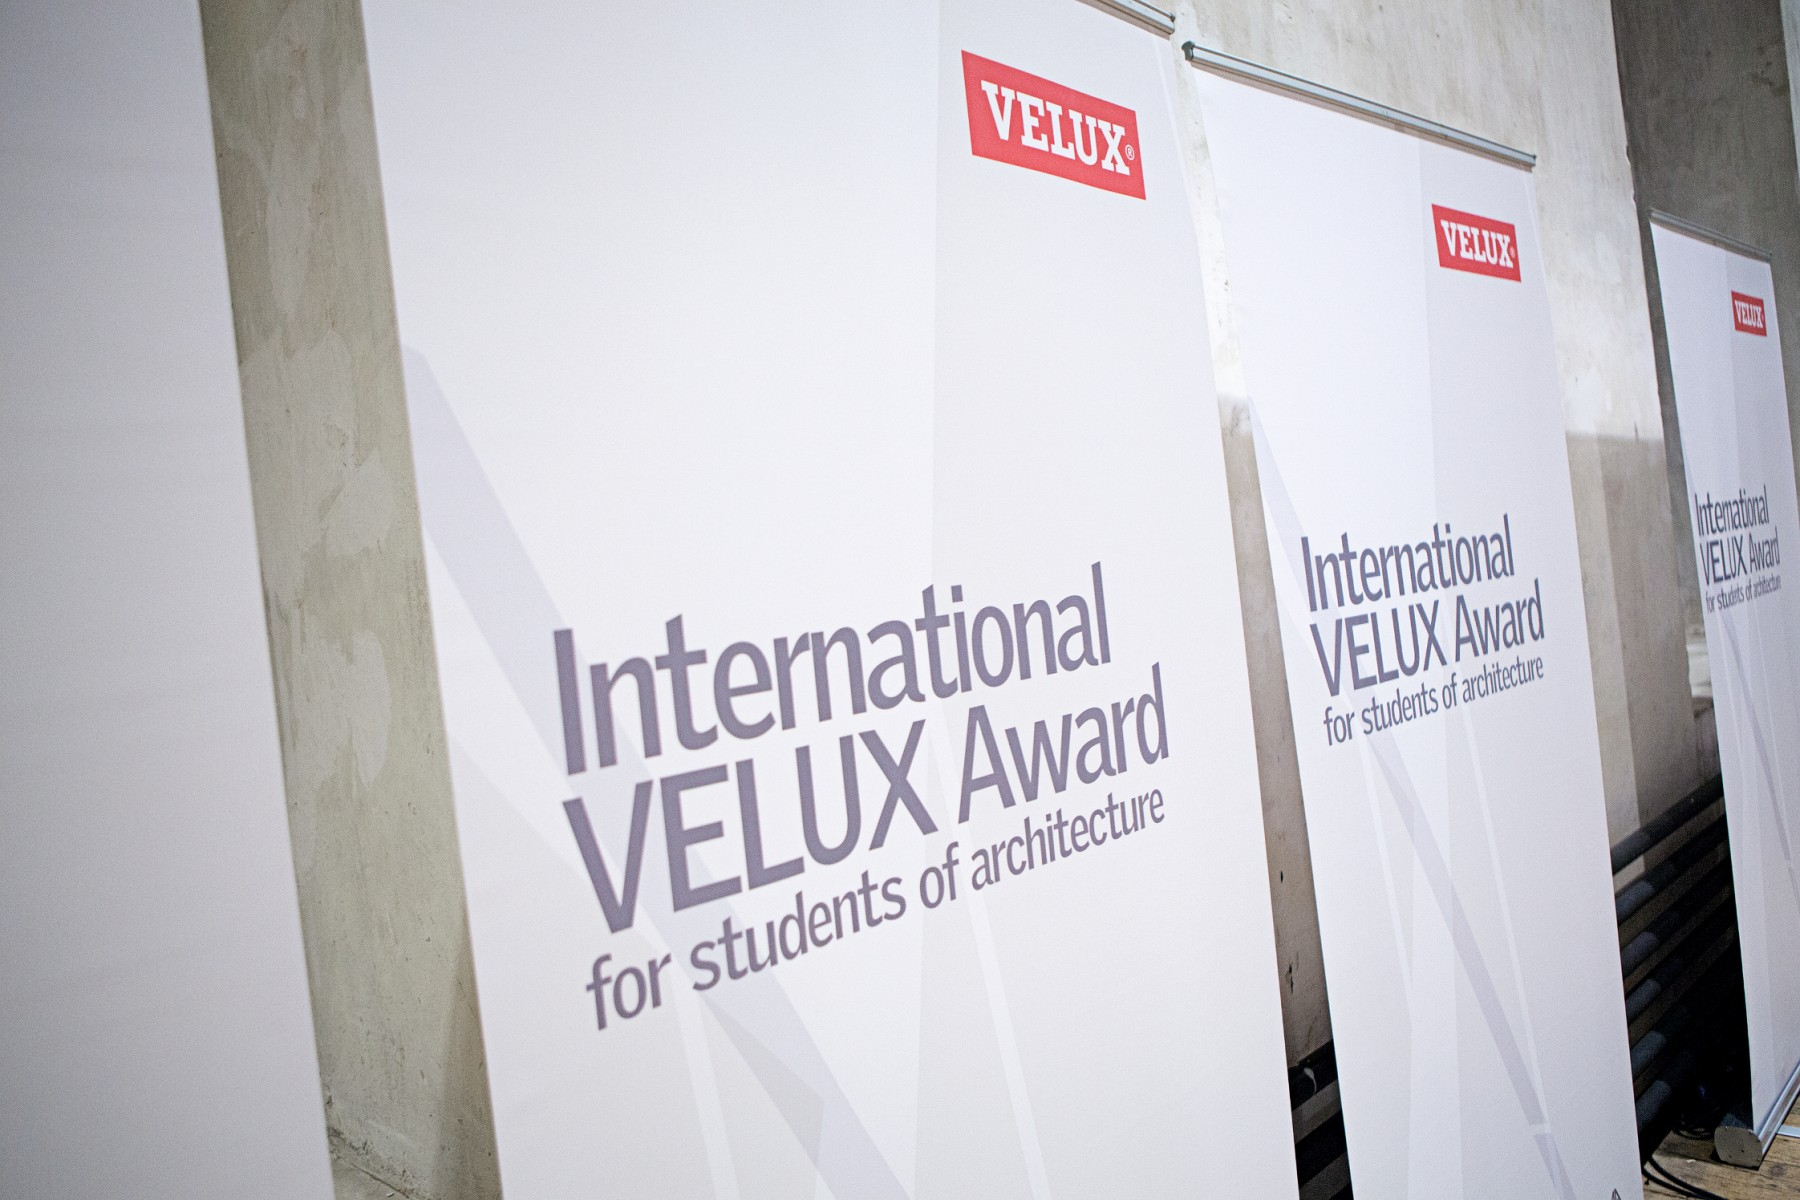 Concours International VELUX Award